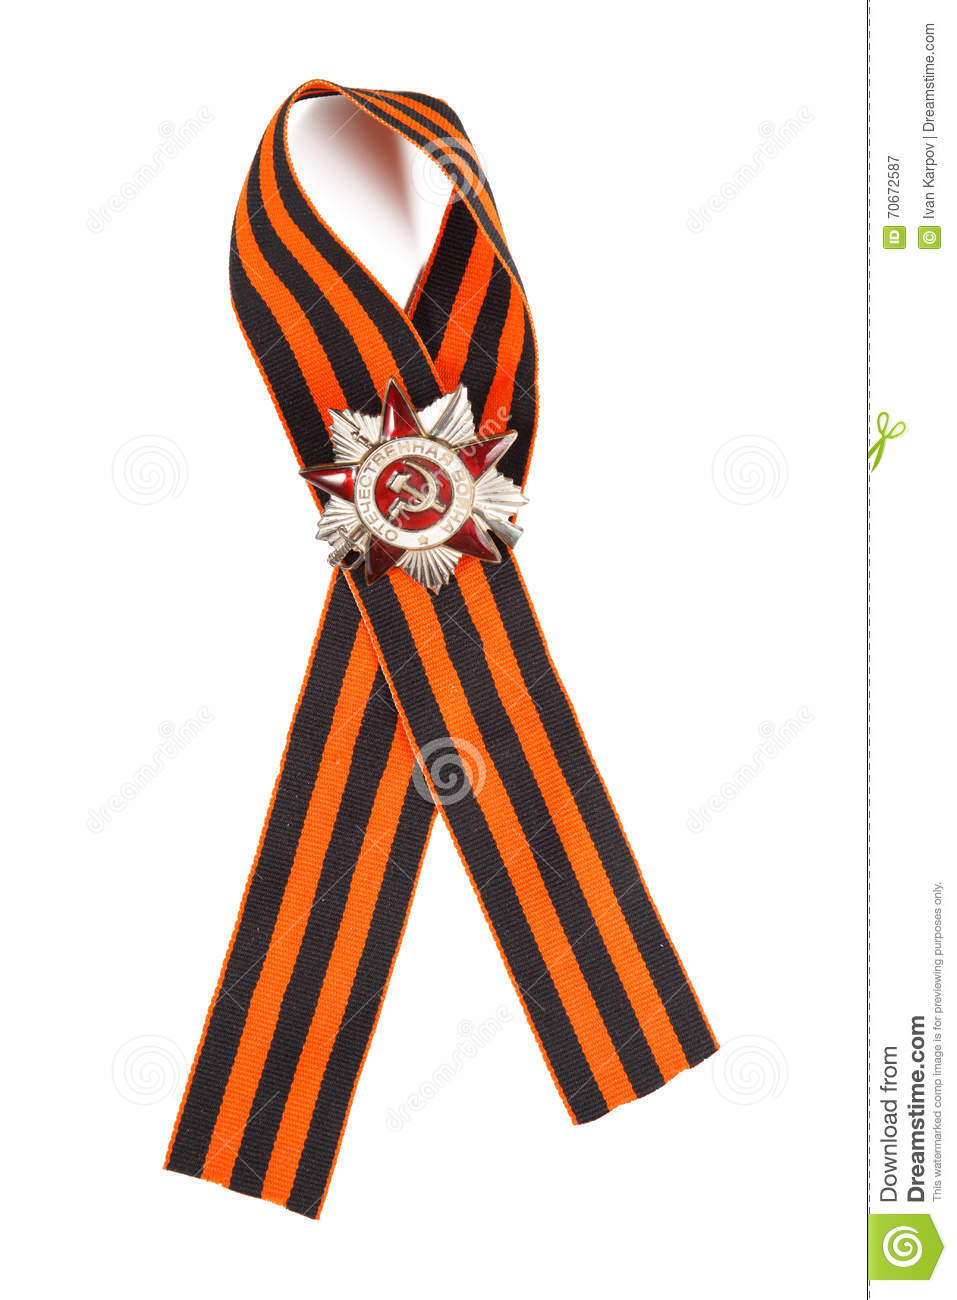 St george ribbon symbol of russias victory in world war ii royalty free stock photo buycottarizona Gallery